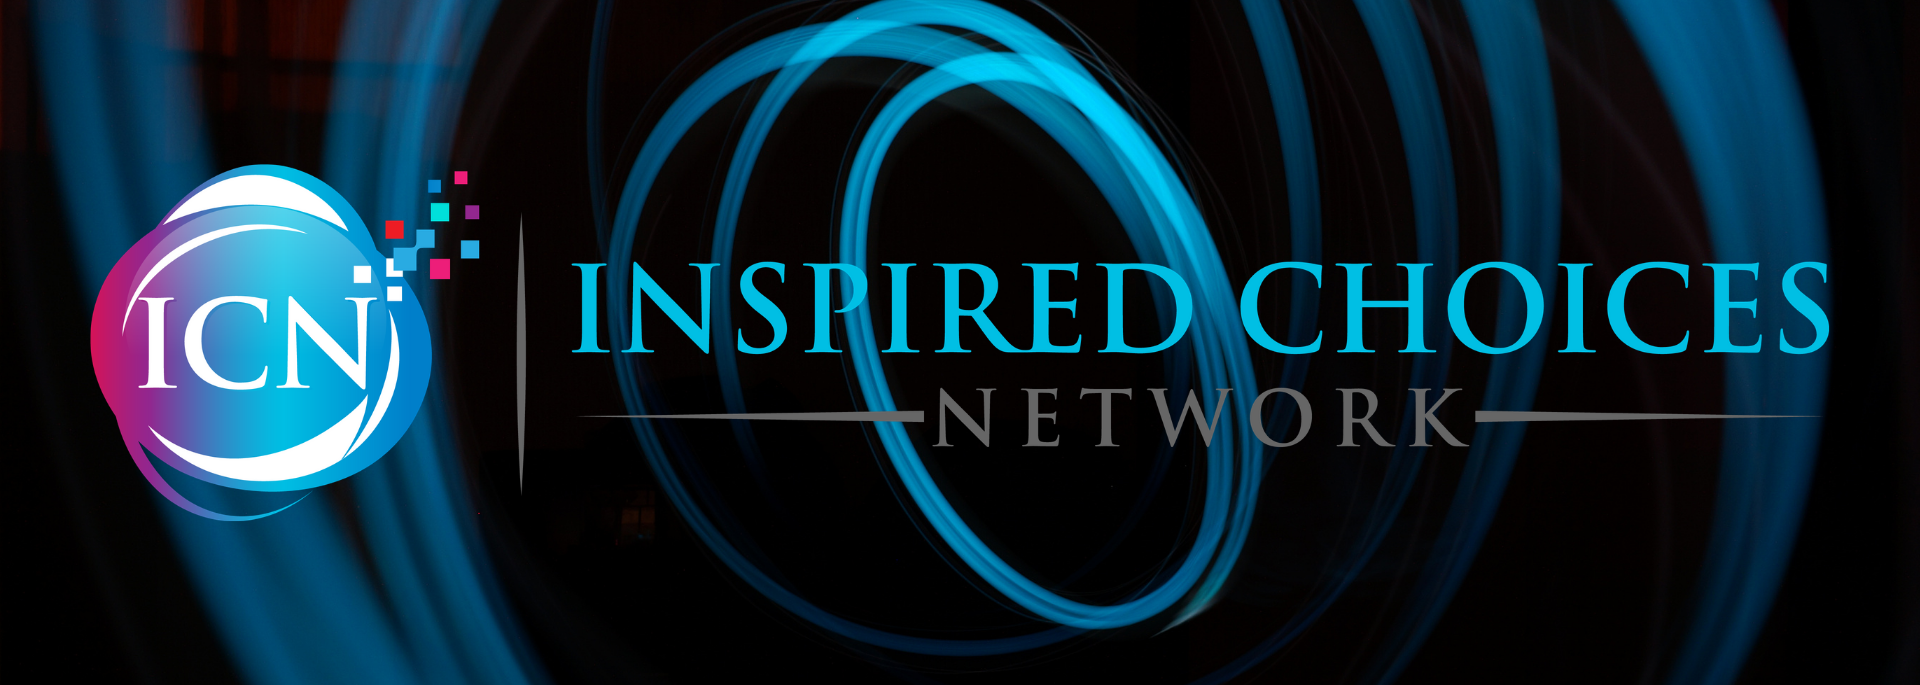 #Inspired Choices Network channel